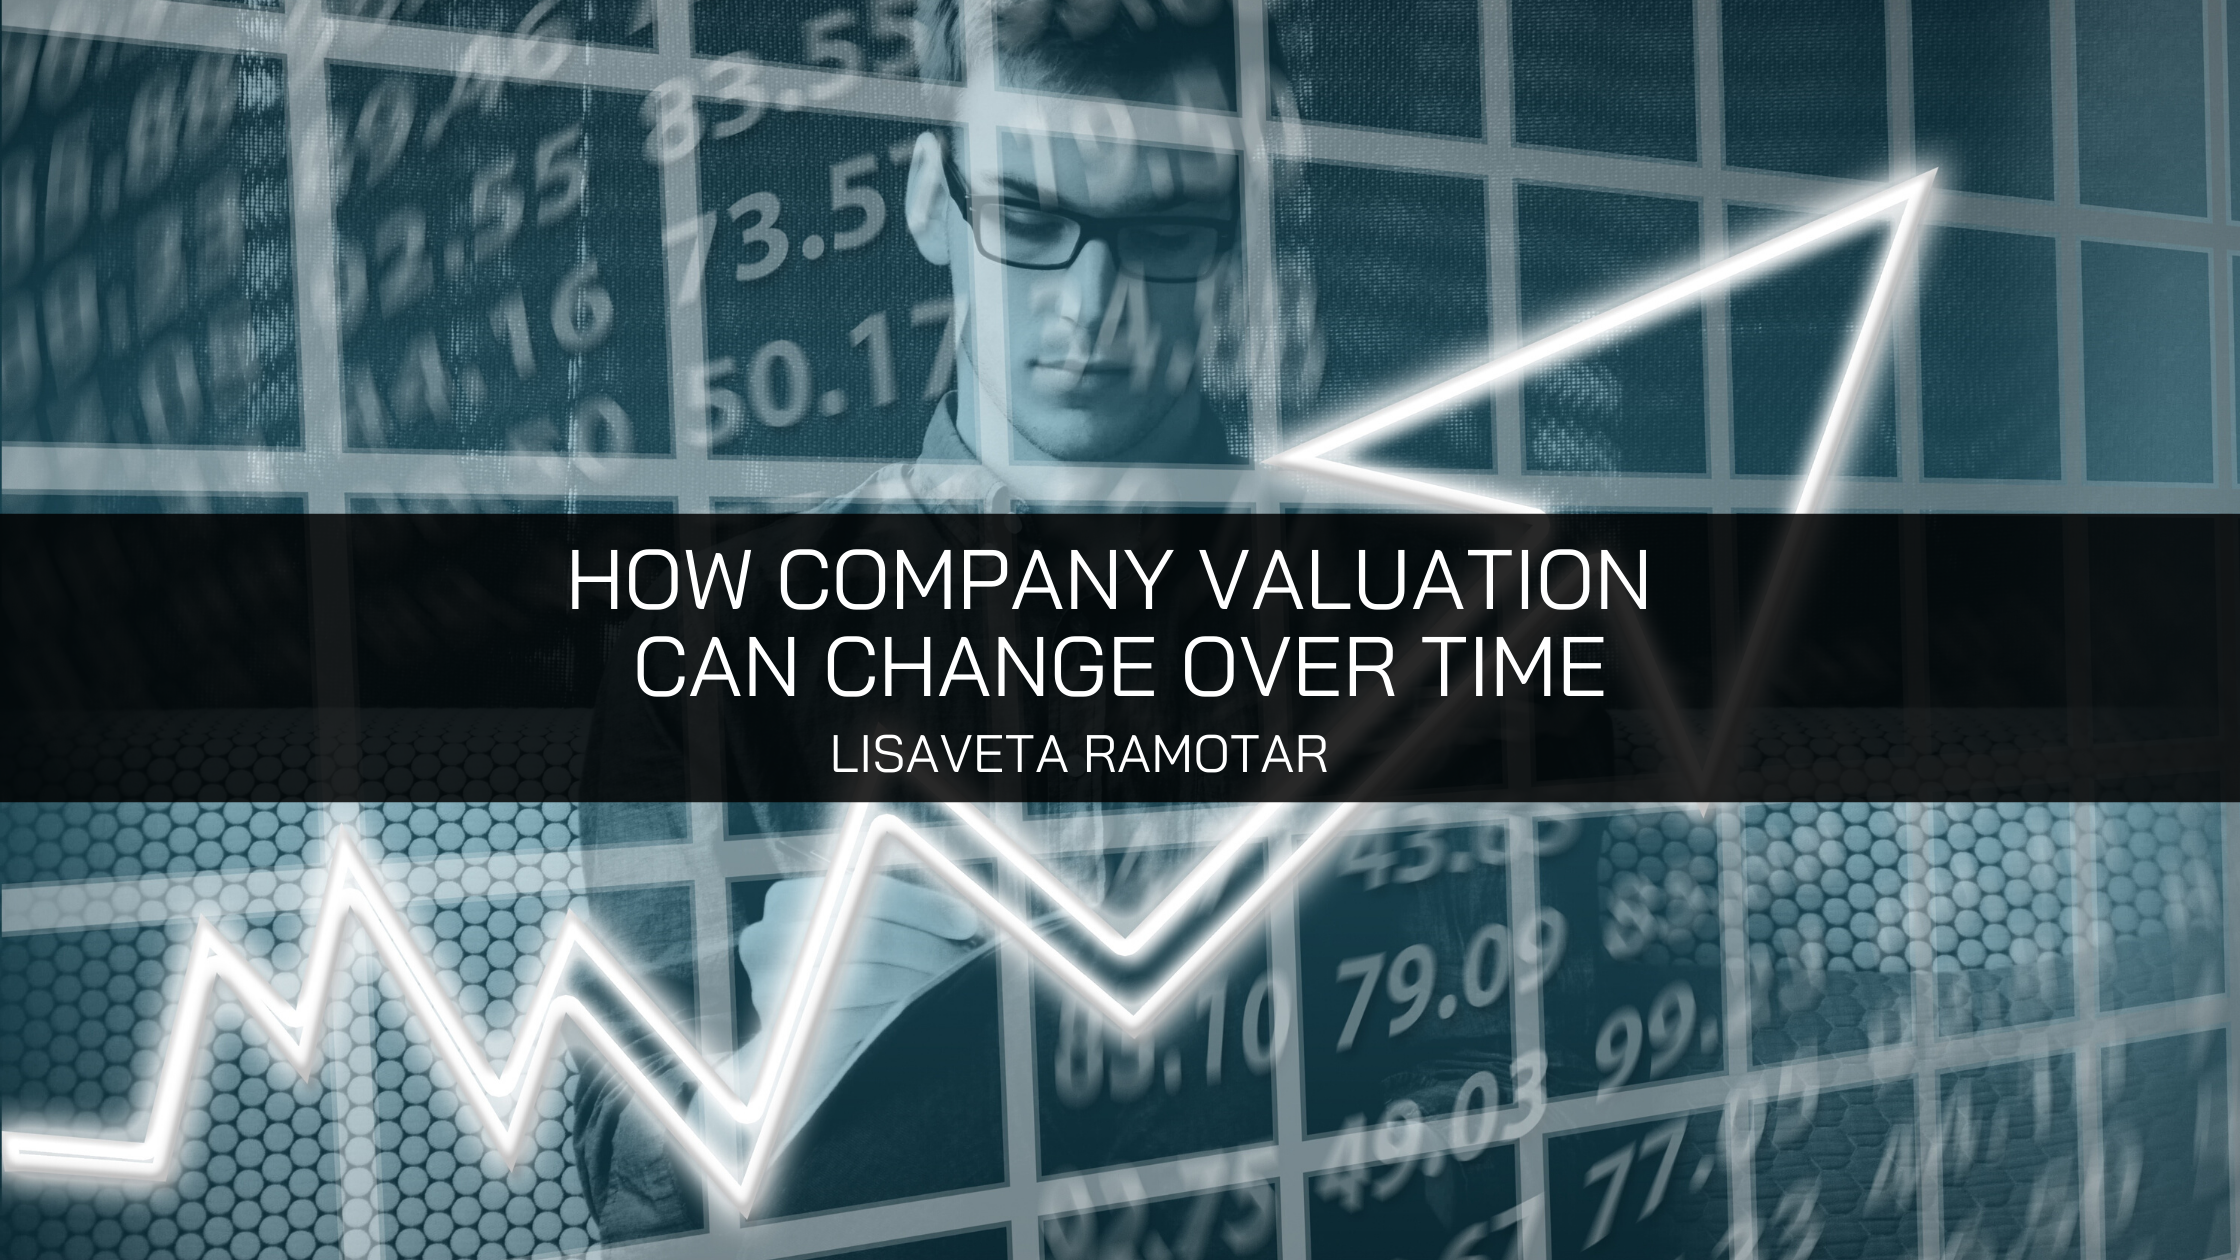 How Company Valuation Can Change Over Time, Lisaveta Ramotar Explores